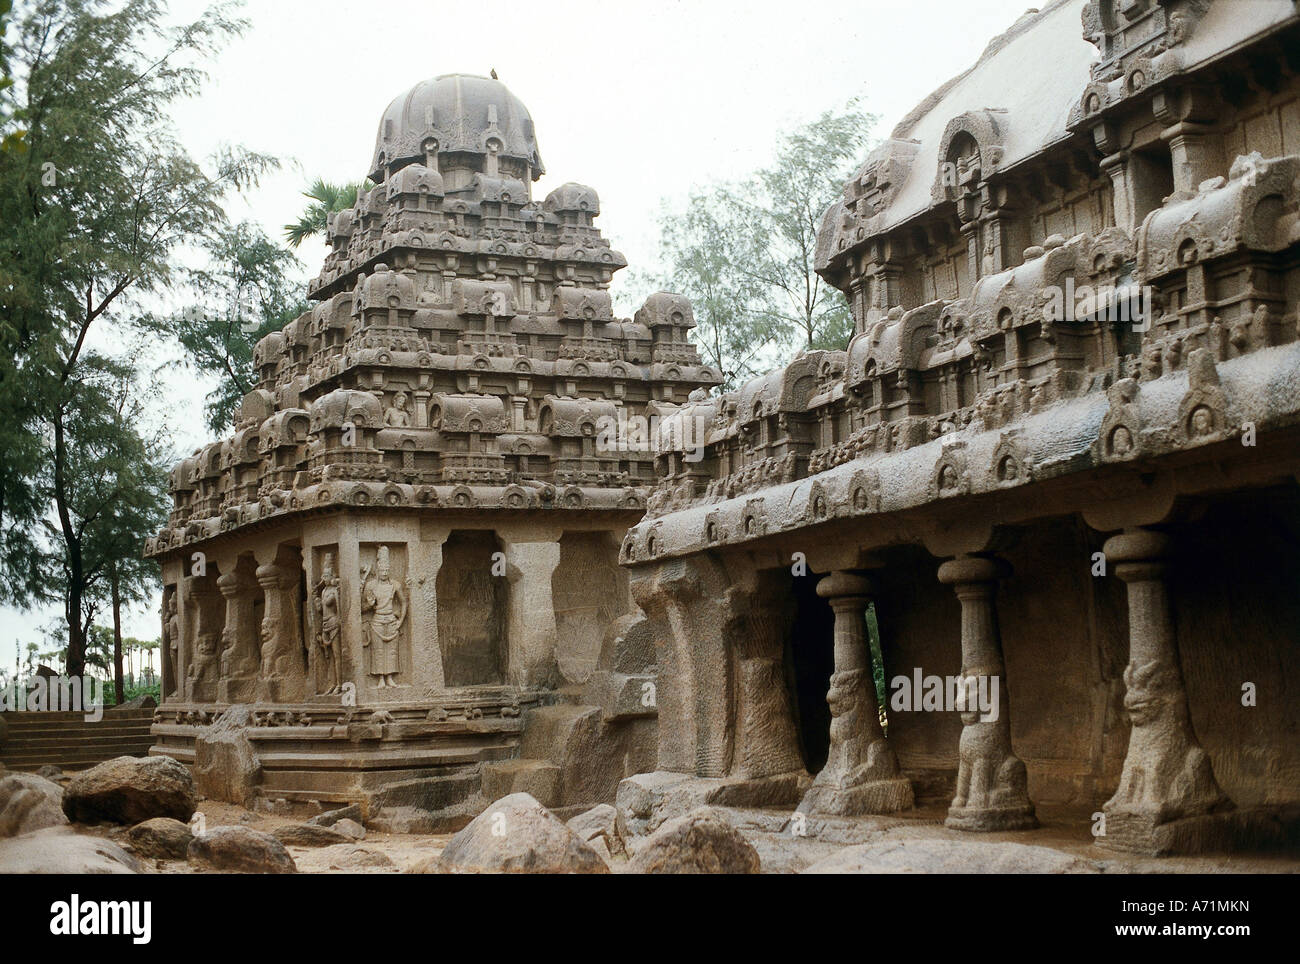 geography / travel, India, Mahabalipuram (Mamallapuram), tamil Nadu, temple, built until 668 AD under Pallava dynasty, - Stock Image